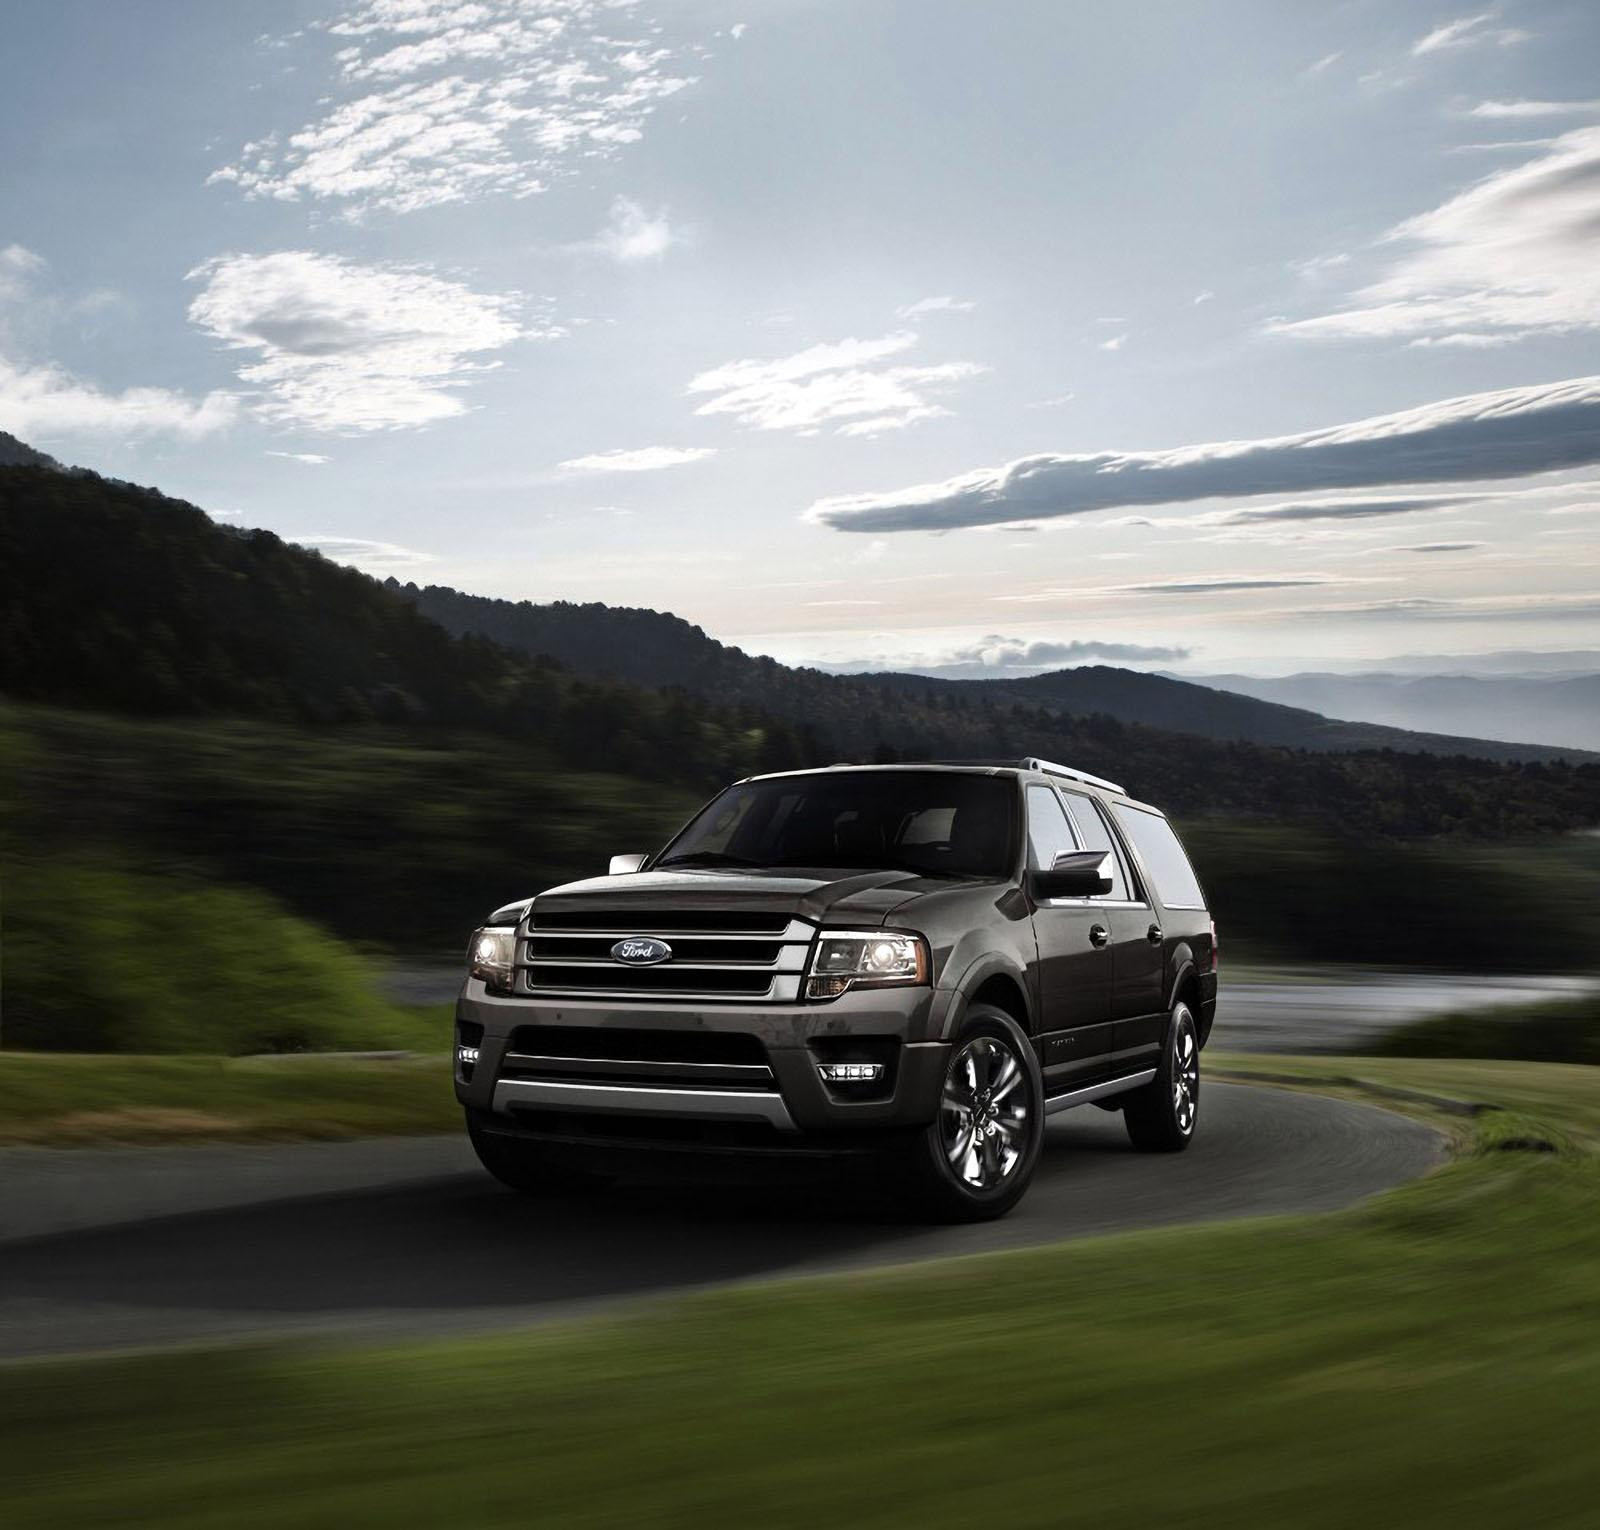 Ford Expediton: 2015 Ford Expedition Revealed With 3.5-liter EcoBoost